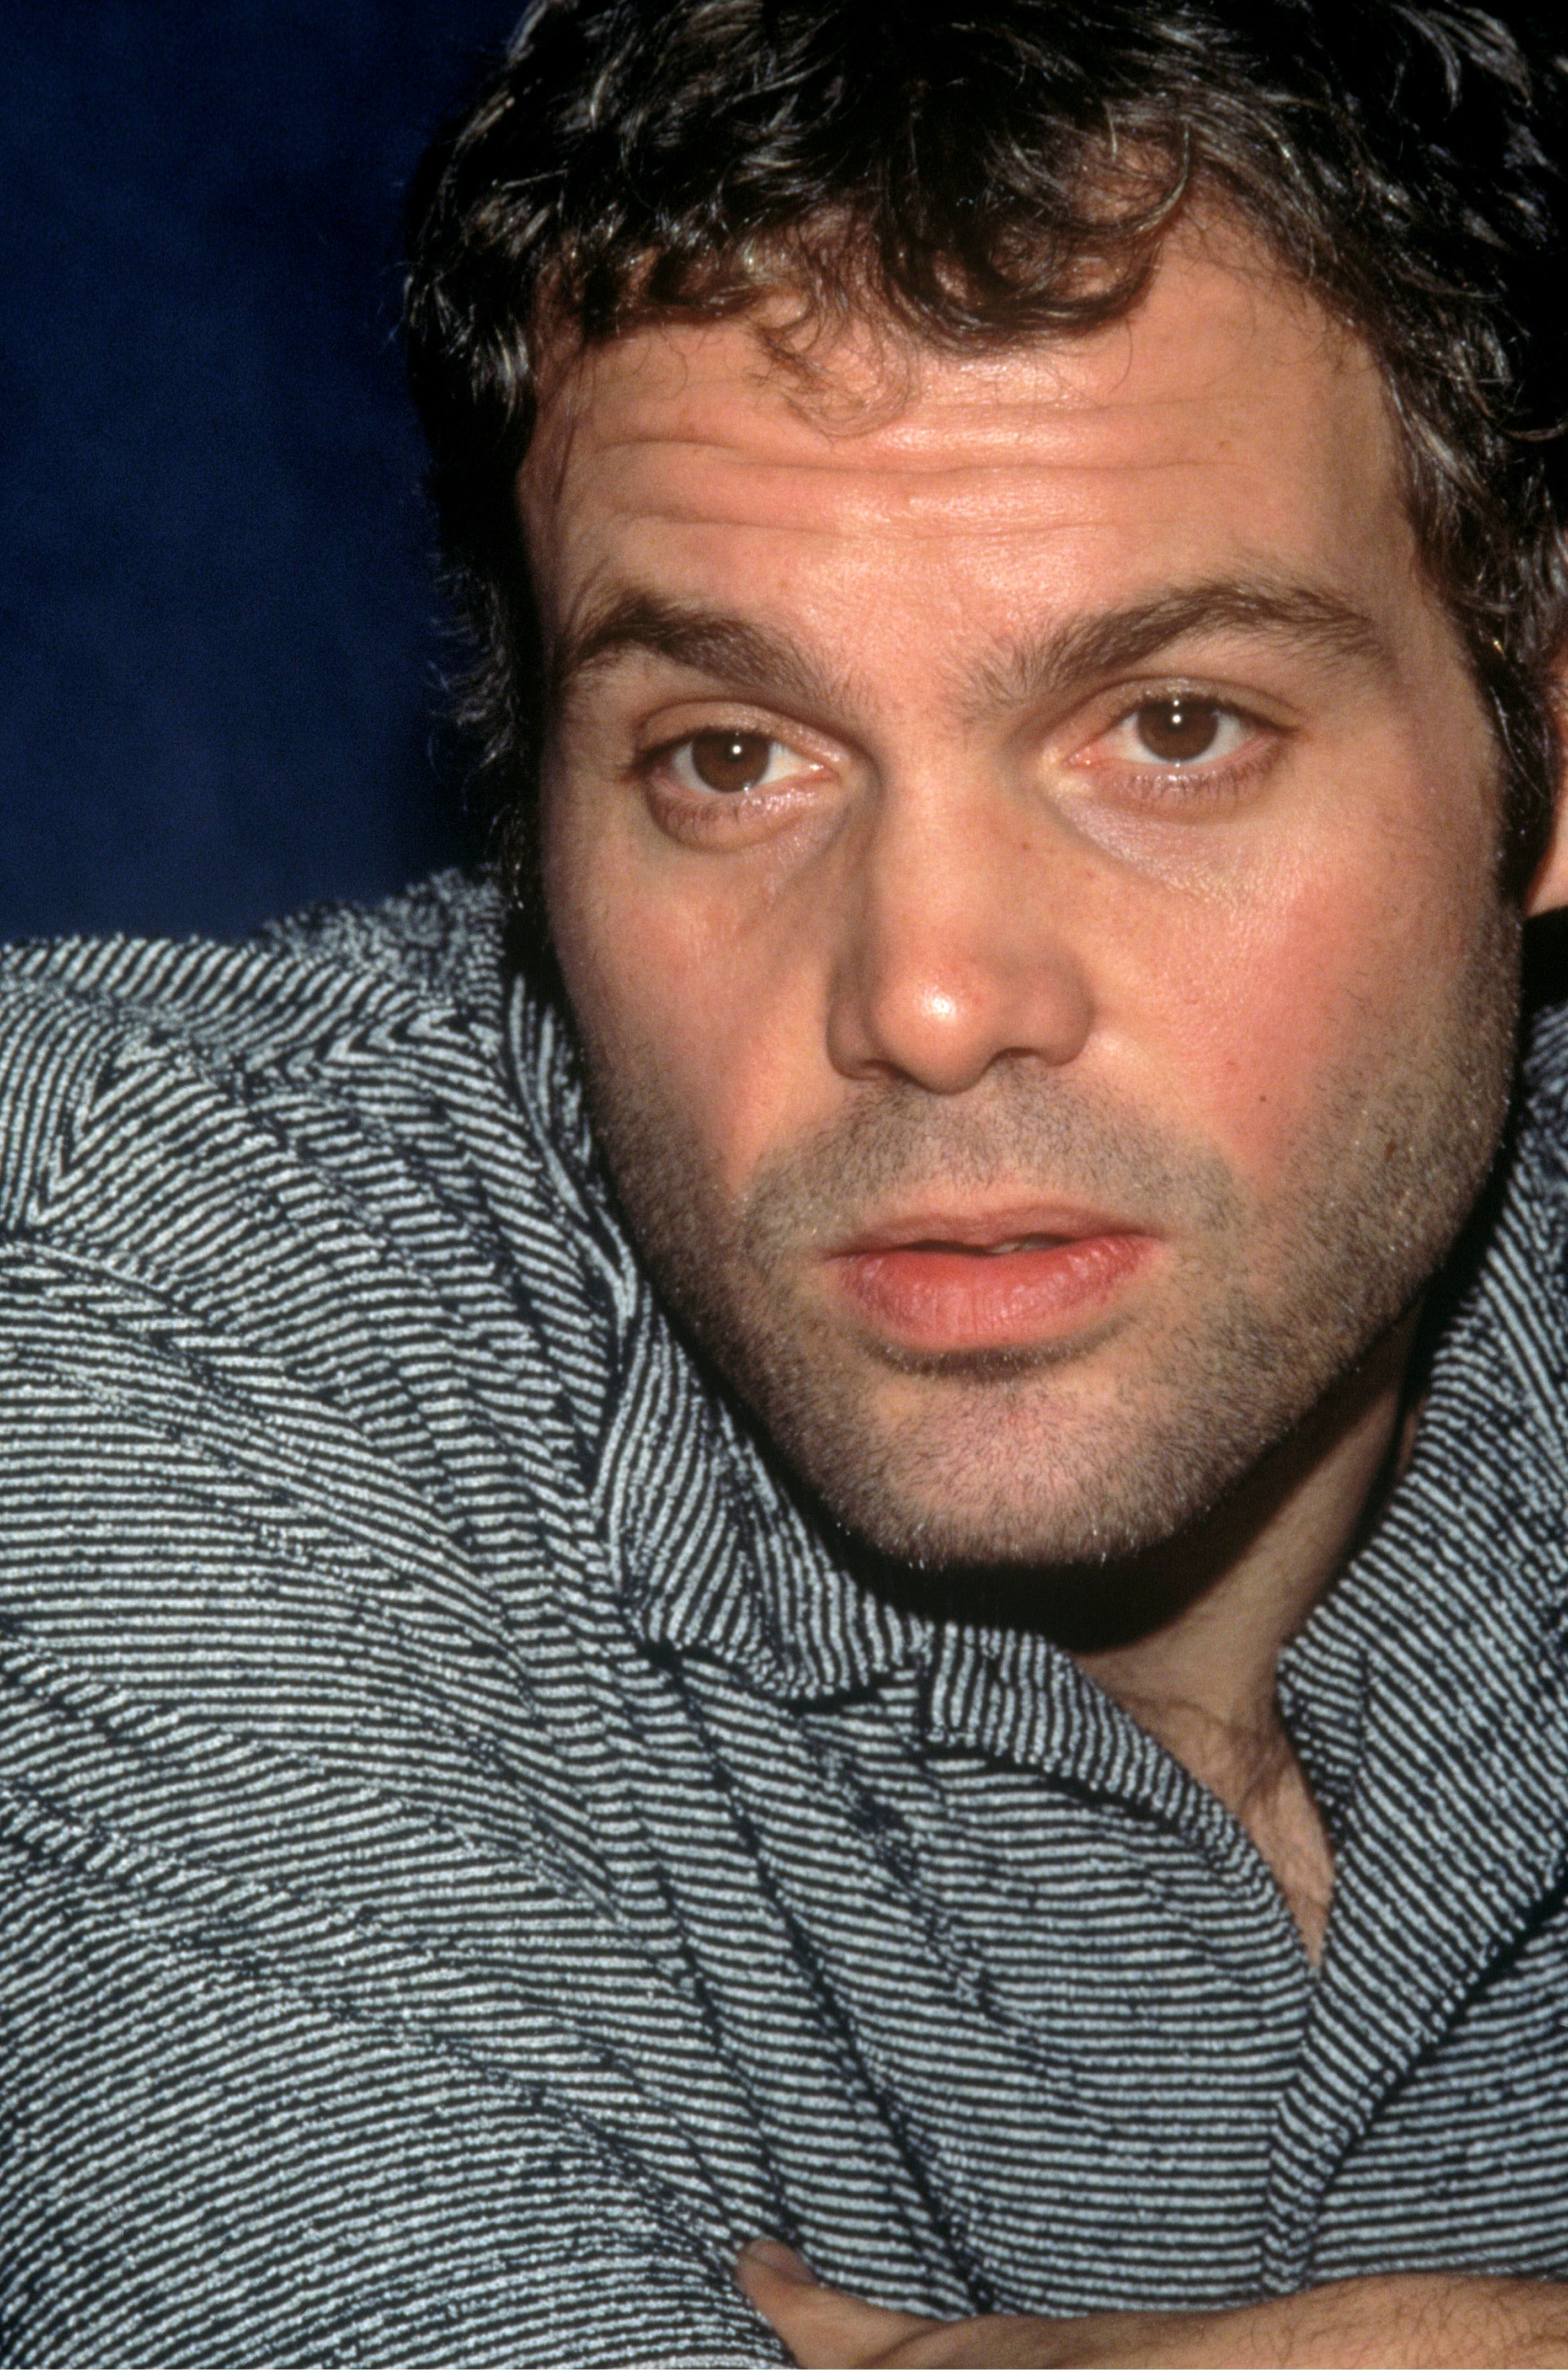 Vincent D'Onofrio.  I always forget how adorable he is until I see him in something.  Last night I watched 'Happy Accidents' and was reminded.